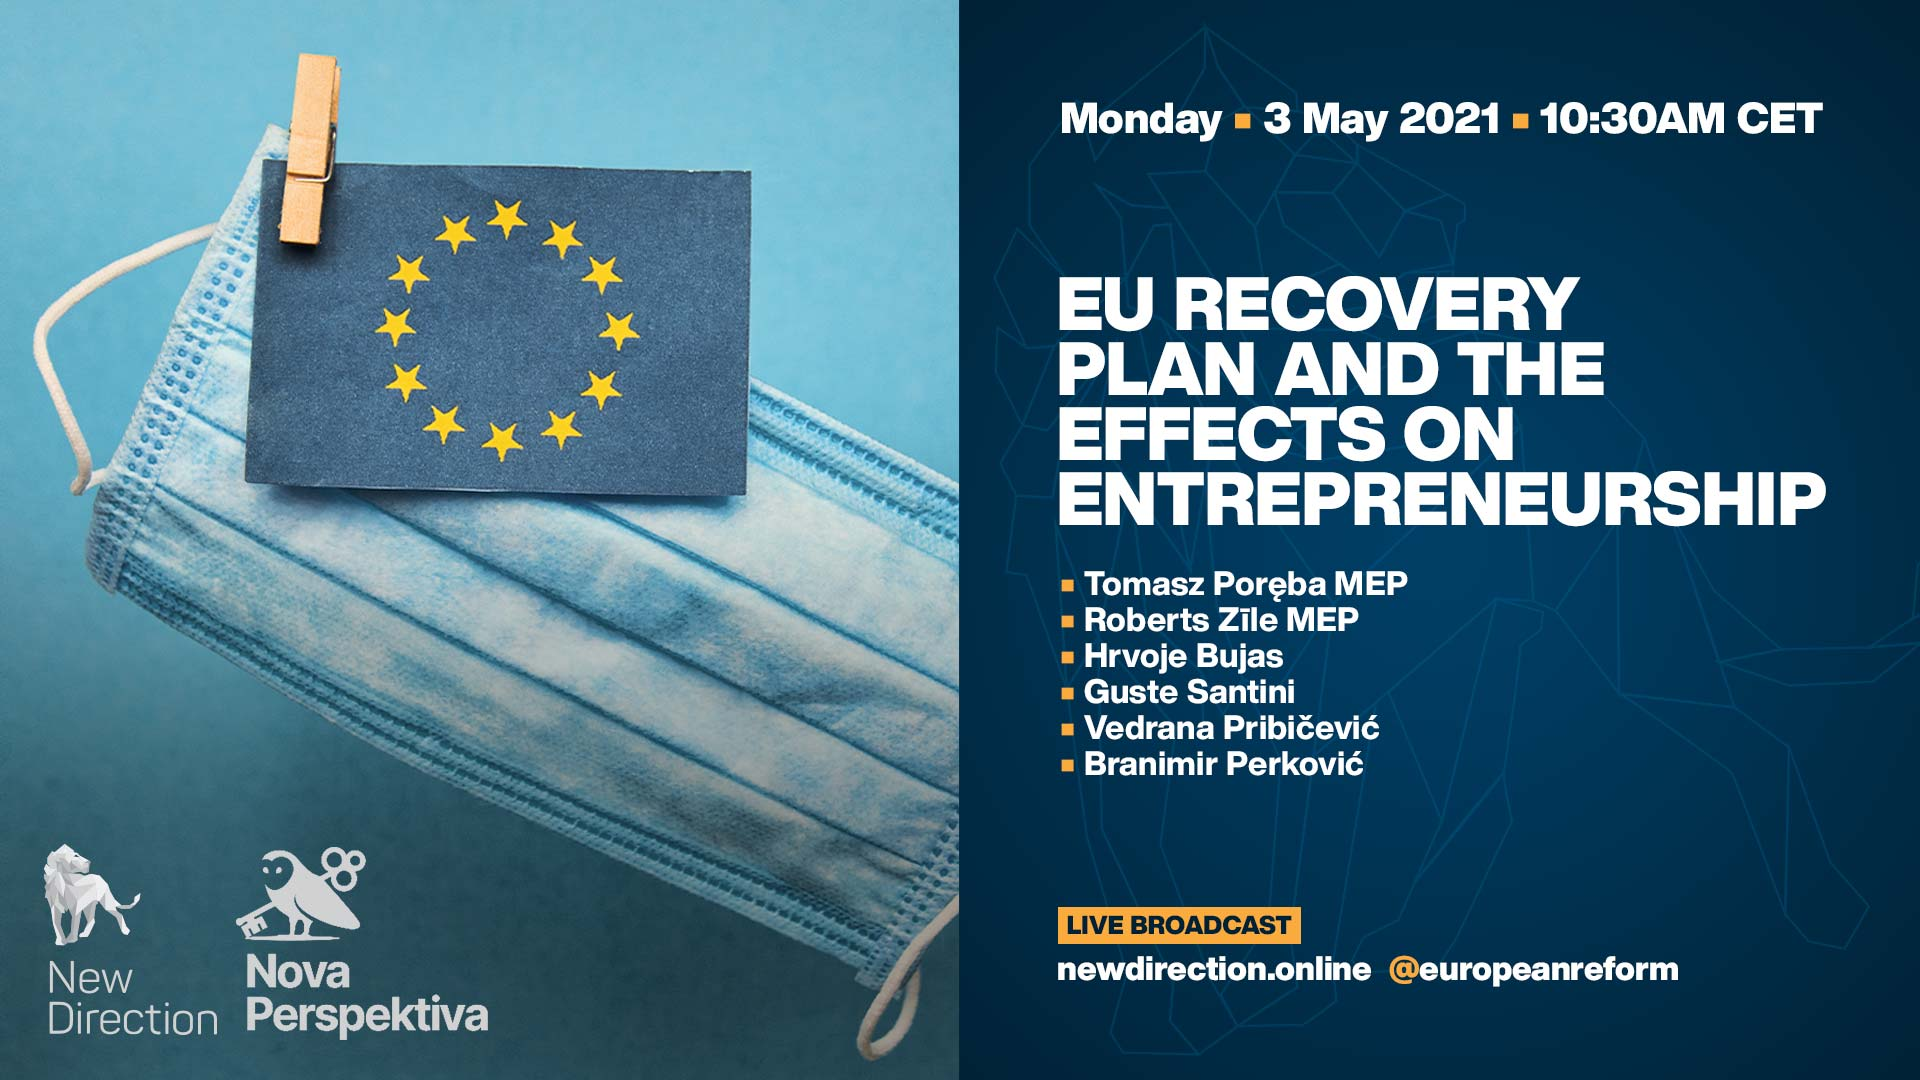 EU RECOVERY PLAN AND THE EFFECTS ON ENTREPRENEURSHIP